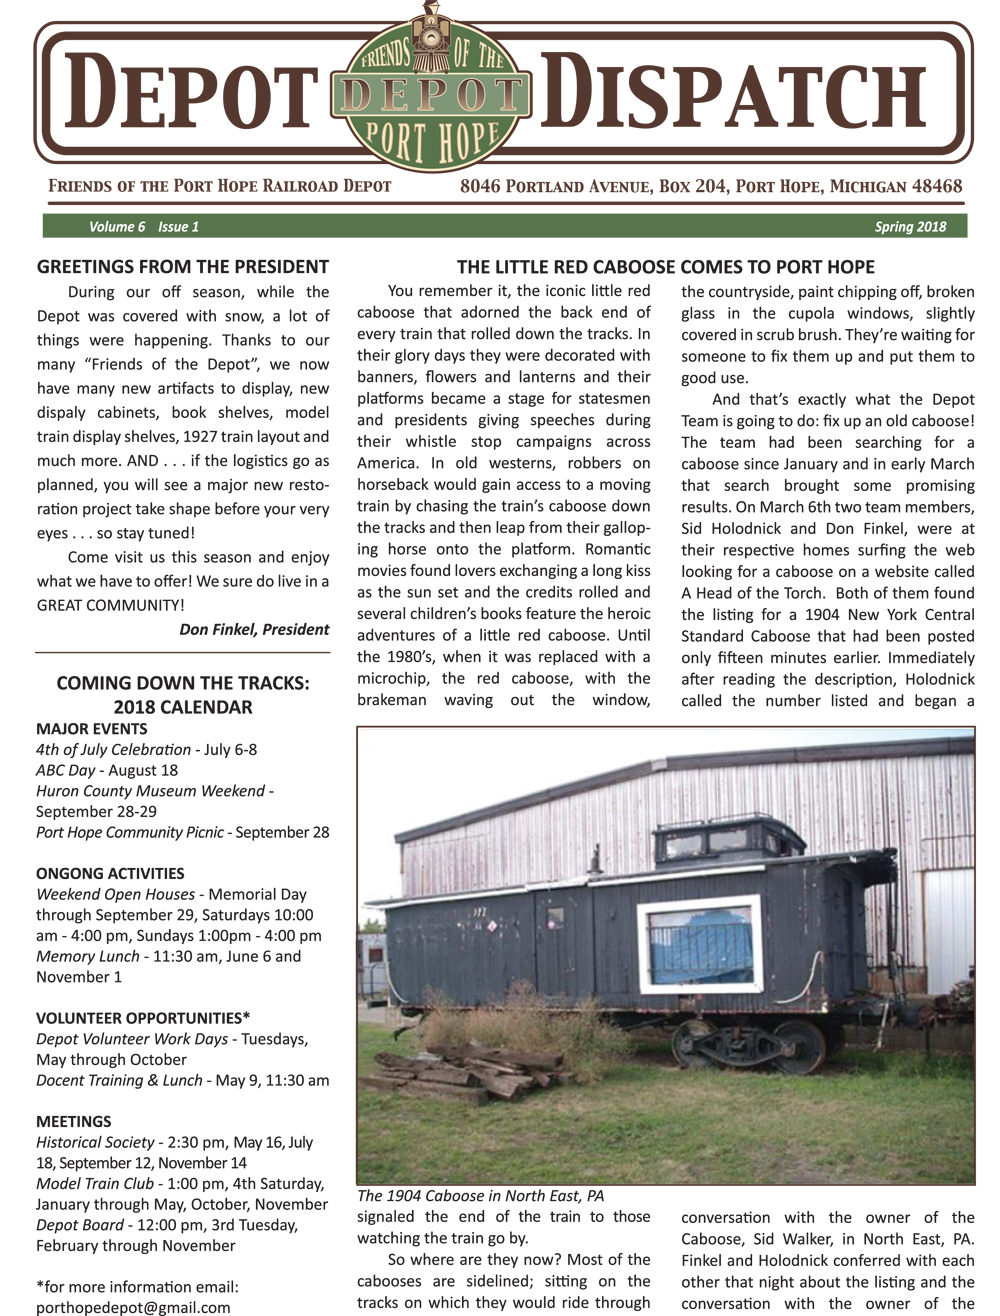 Read the Depot Dispatch